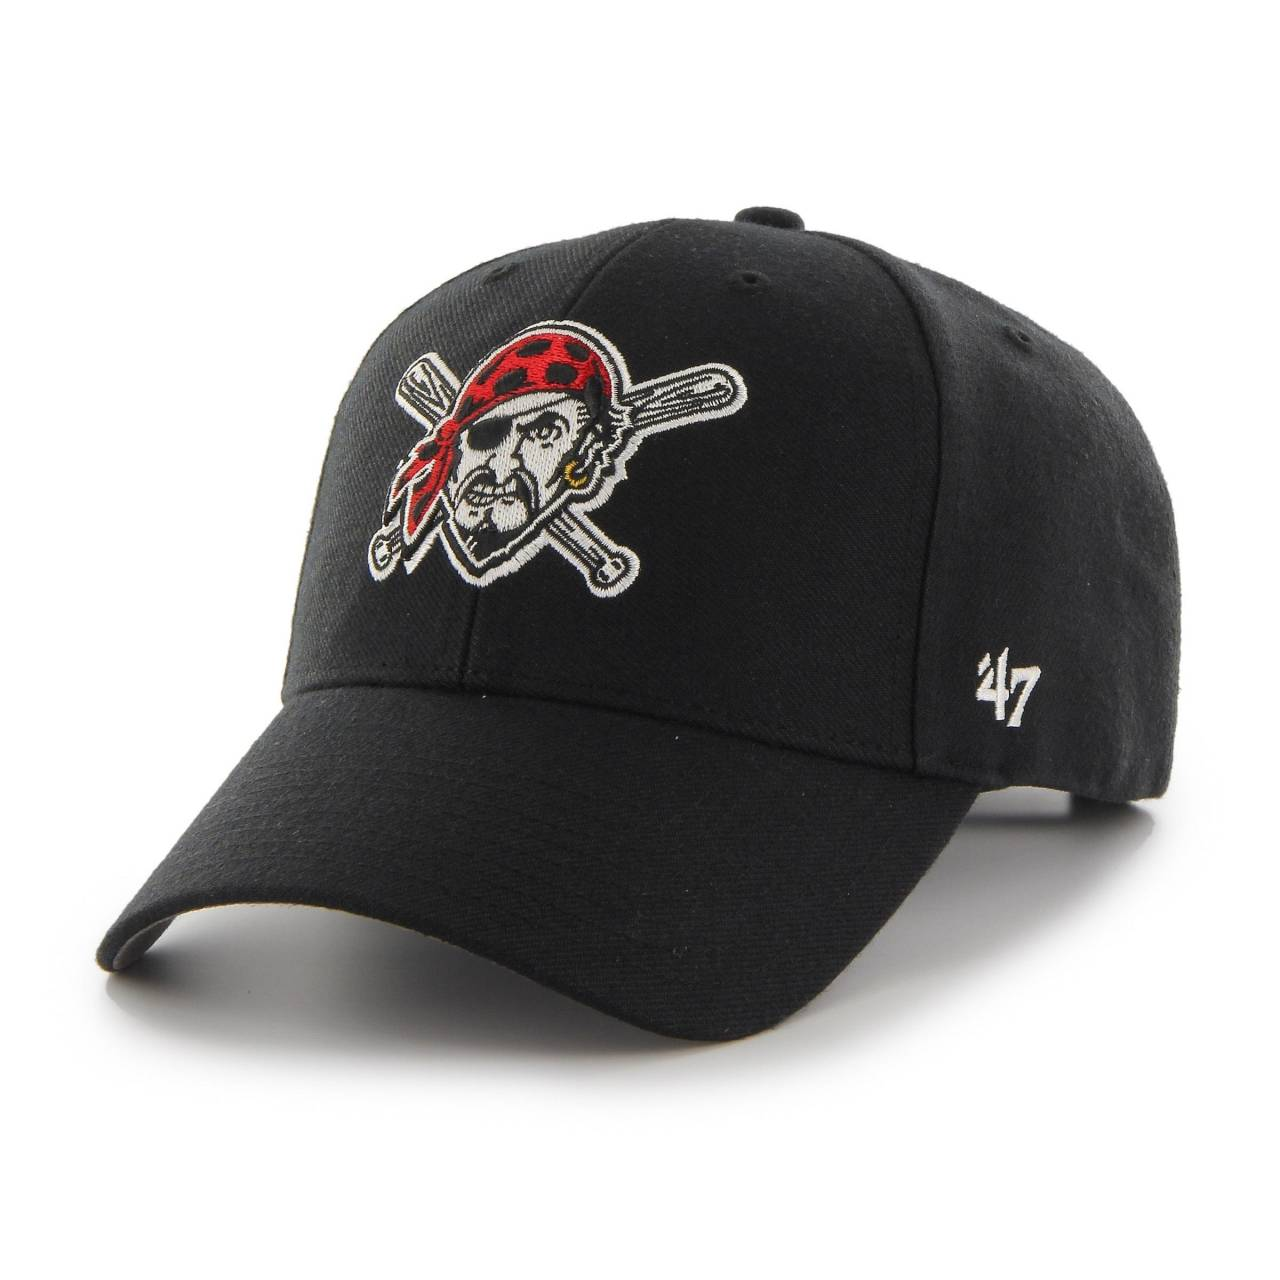 47-mvp-mlb-cooperstown-pittsburgh-pirates-black-curved-cap